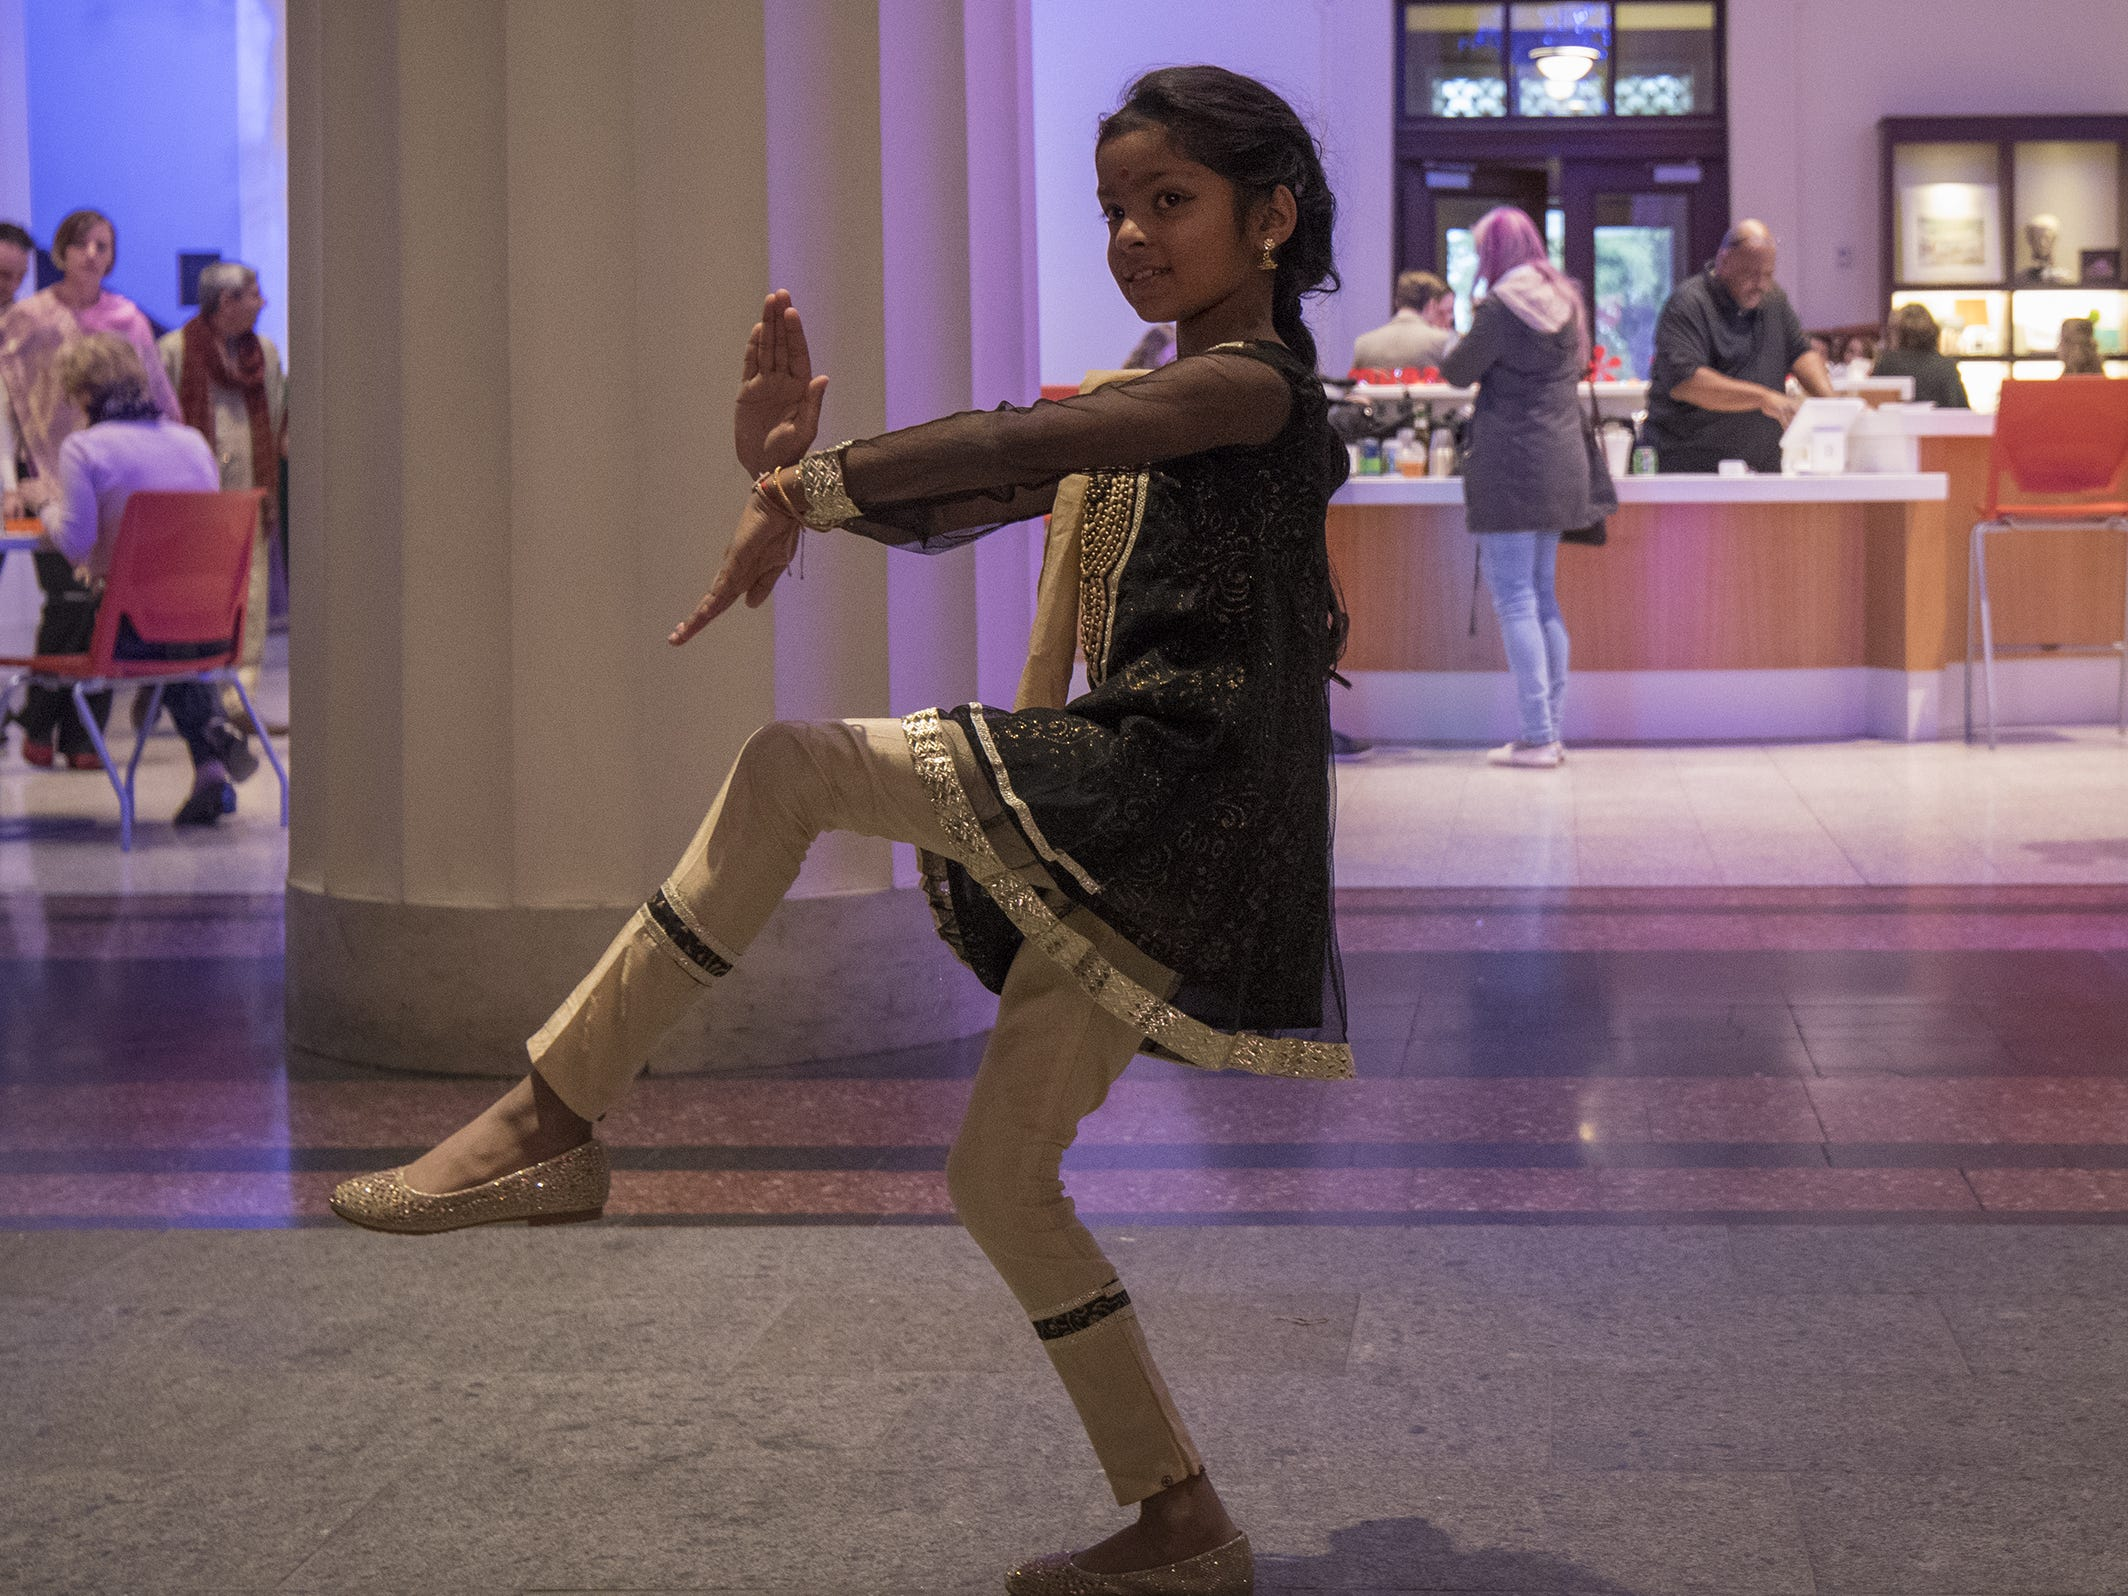 Sashti Subramanlam, 8, of West Chester poses for a photo during Art After Dark at the Cincinnati Art Museum Friday, Oct. 26. The after-hours party celebrates the new exhibition, the Fabrics of India.